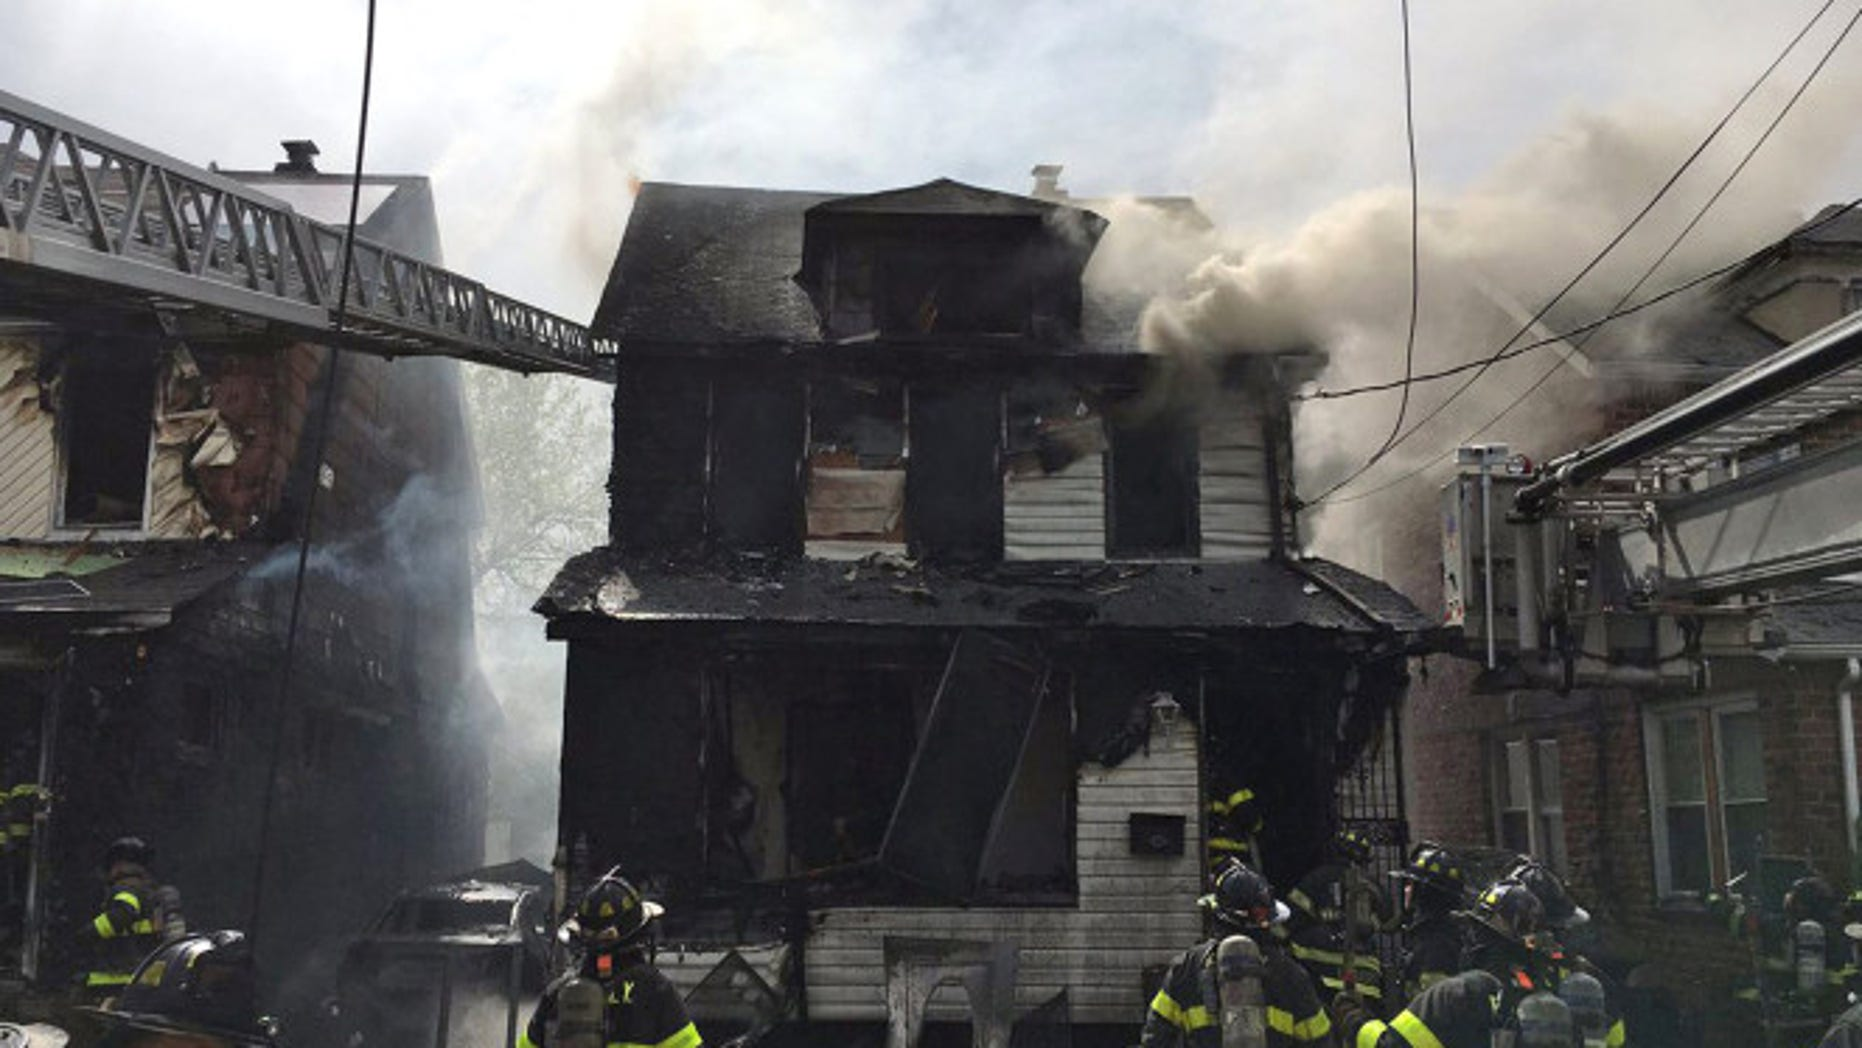 Five people died in a Queens house fire on Sunday.